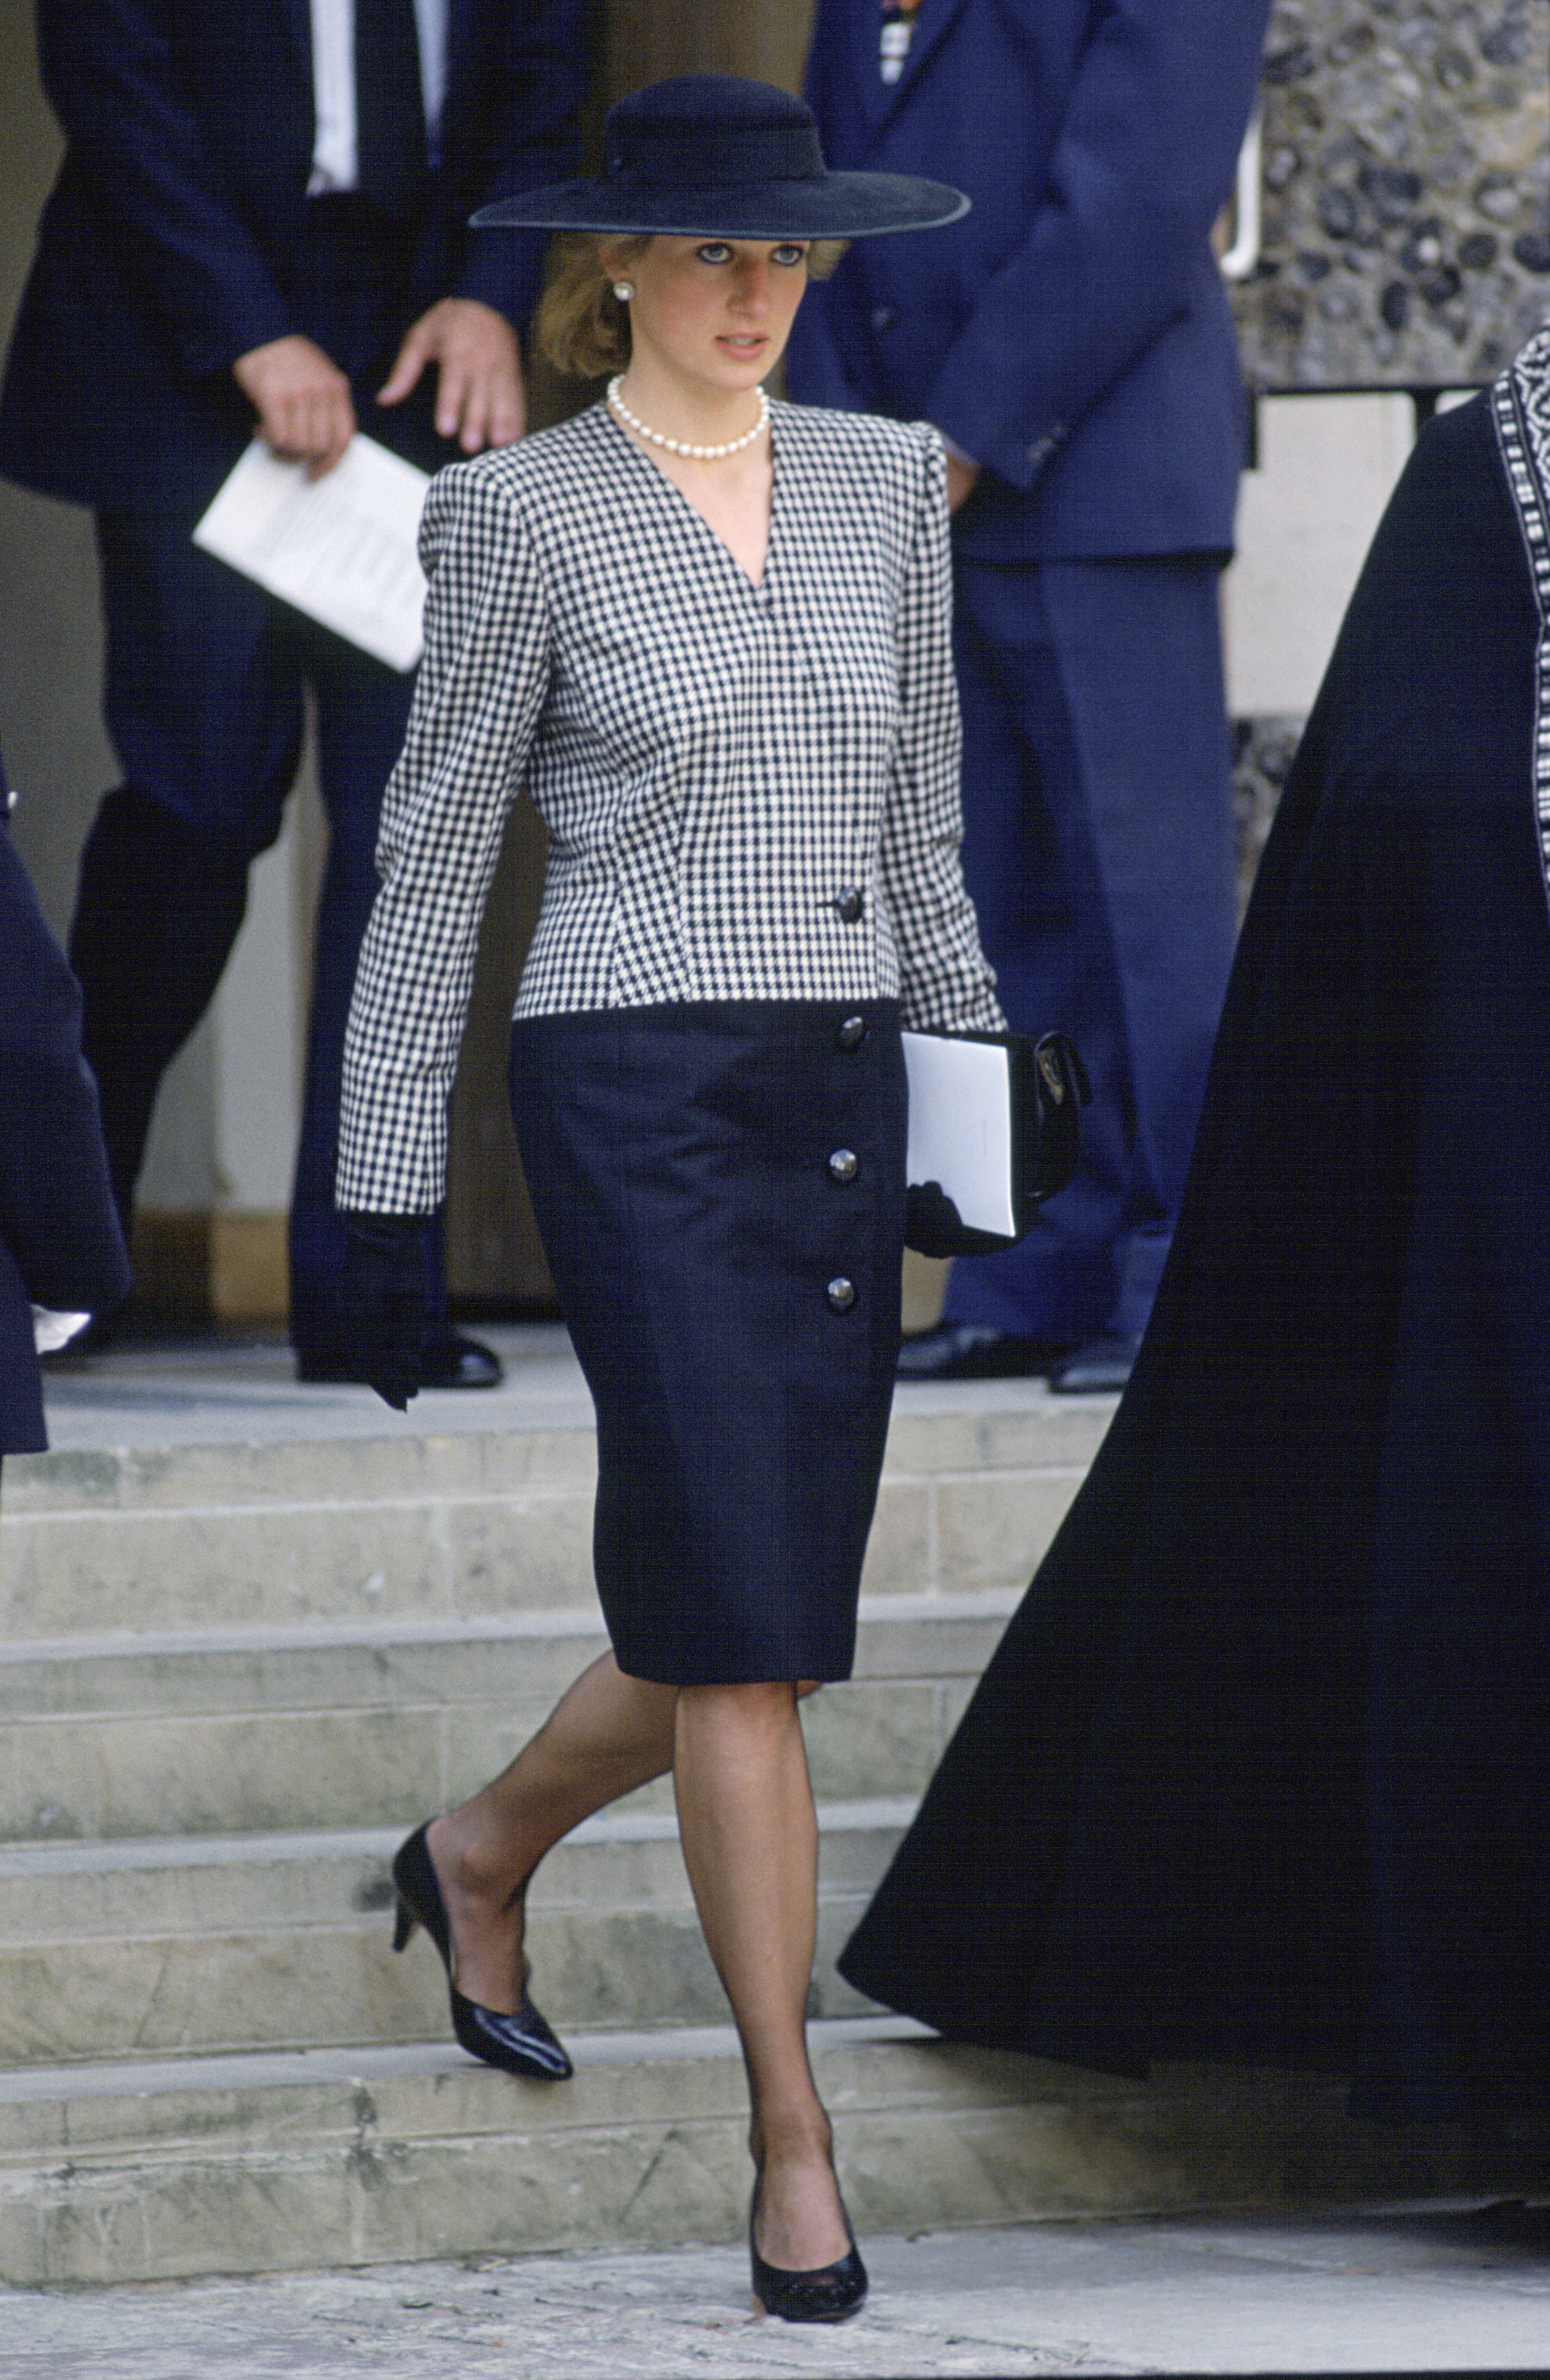 princess diana s most iconic fashion moments princess diana s most iconic fashion